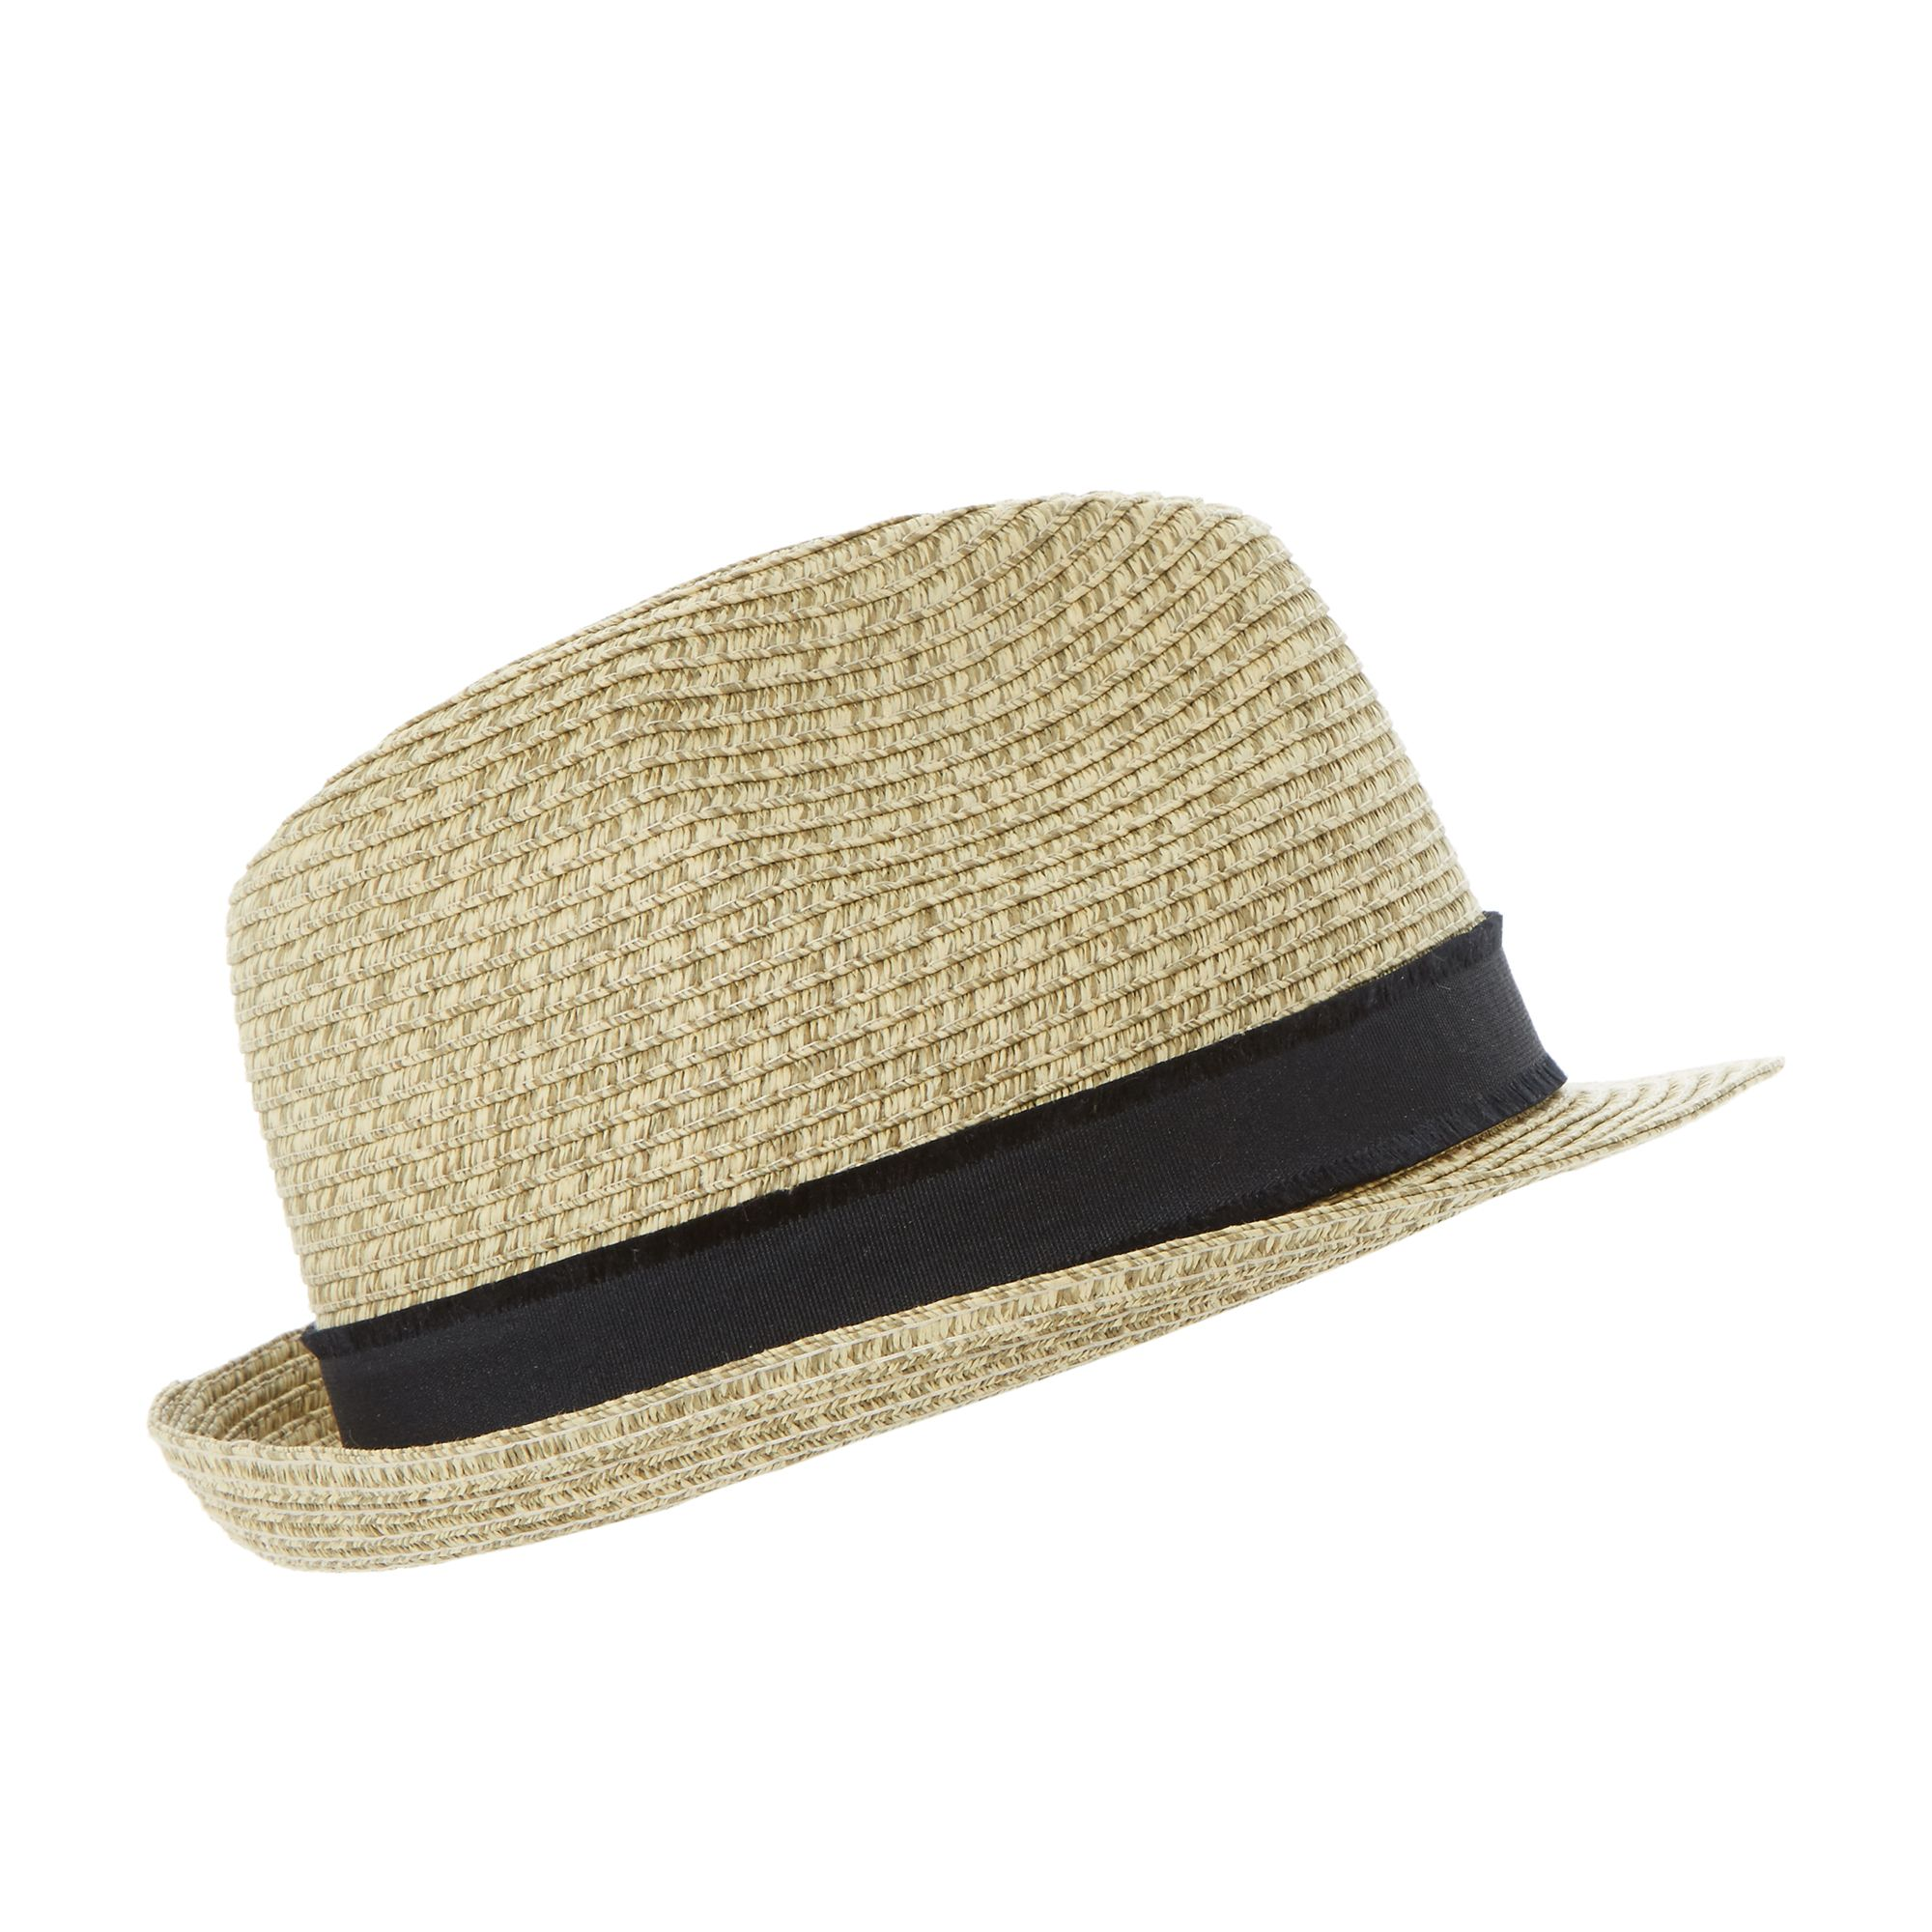 Dune Naples braided straw trilby hat Natural